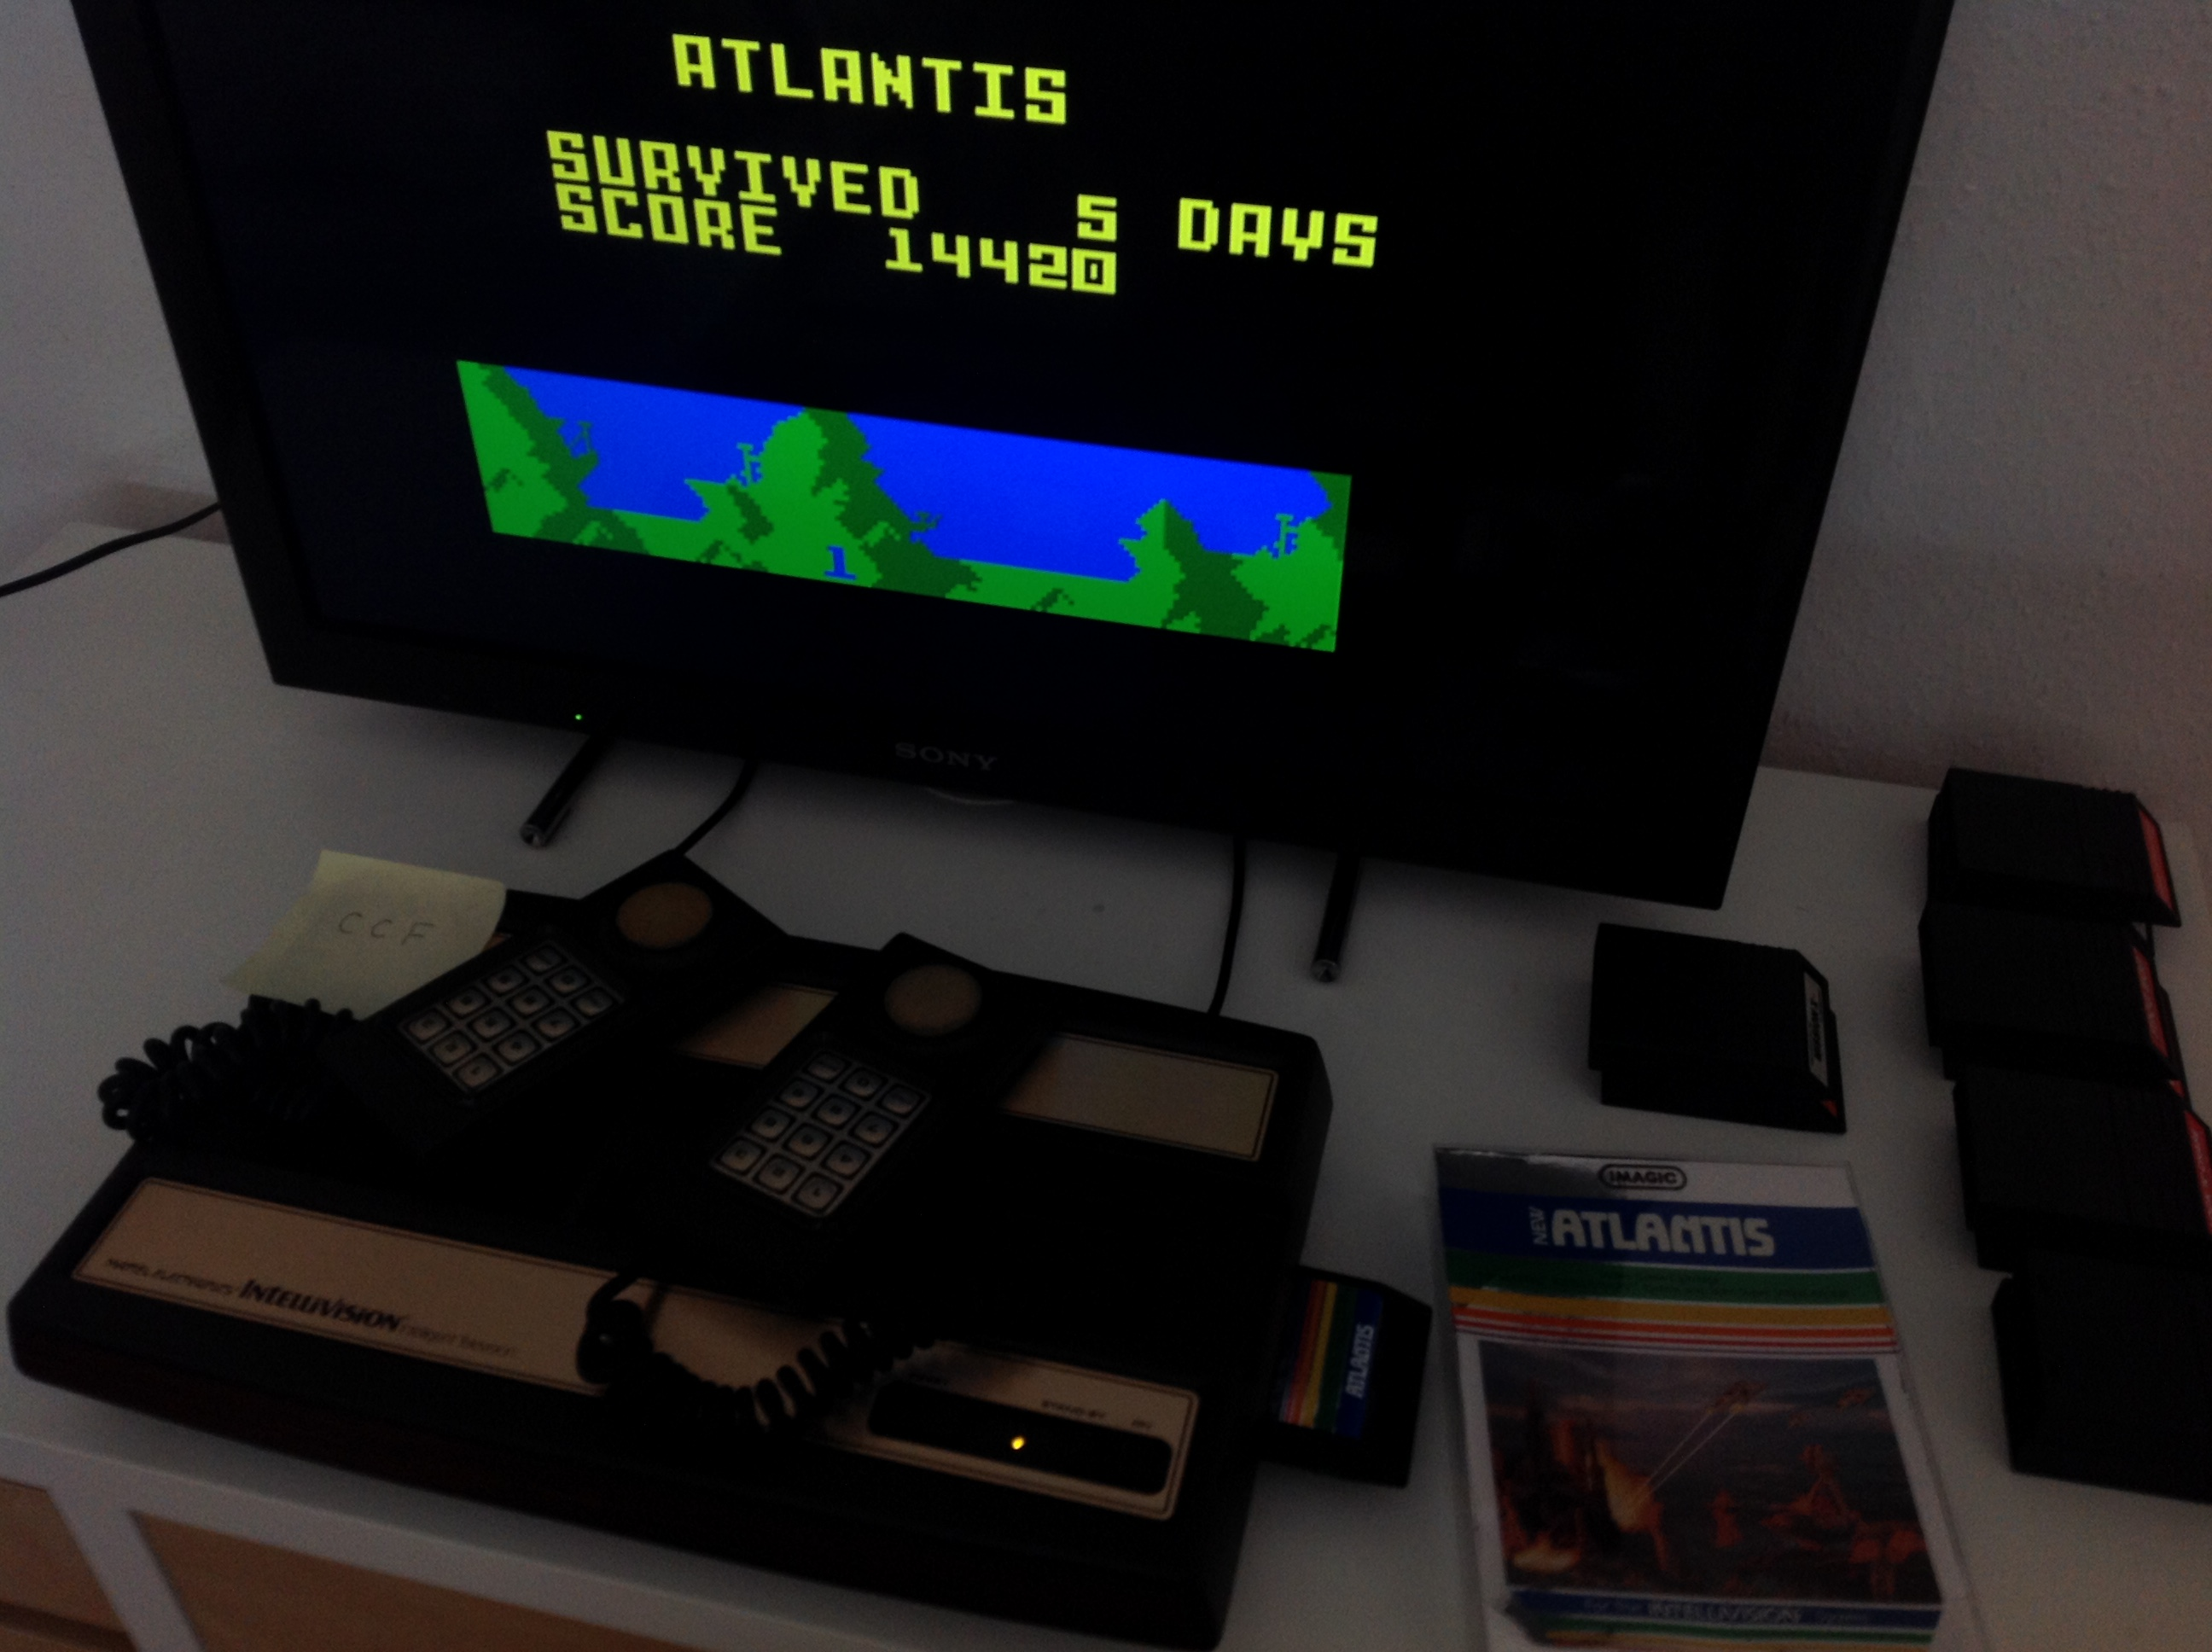 CoCoForest: Atlantis: Easy (Intellivision) 14,420 points on 2018-08-30 11:20:46